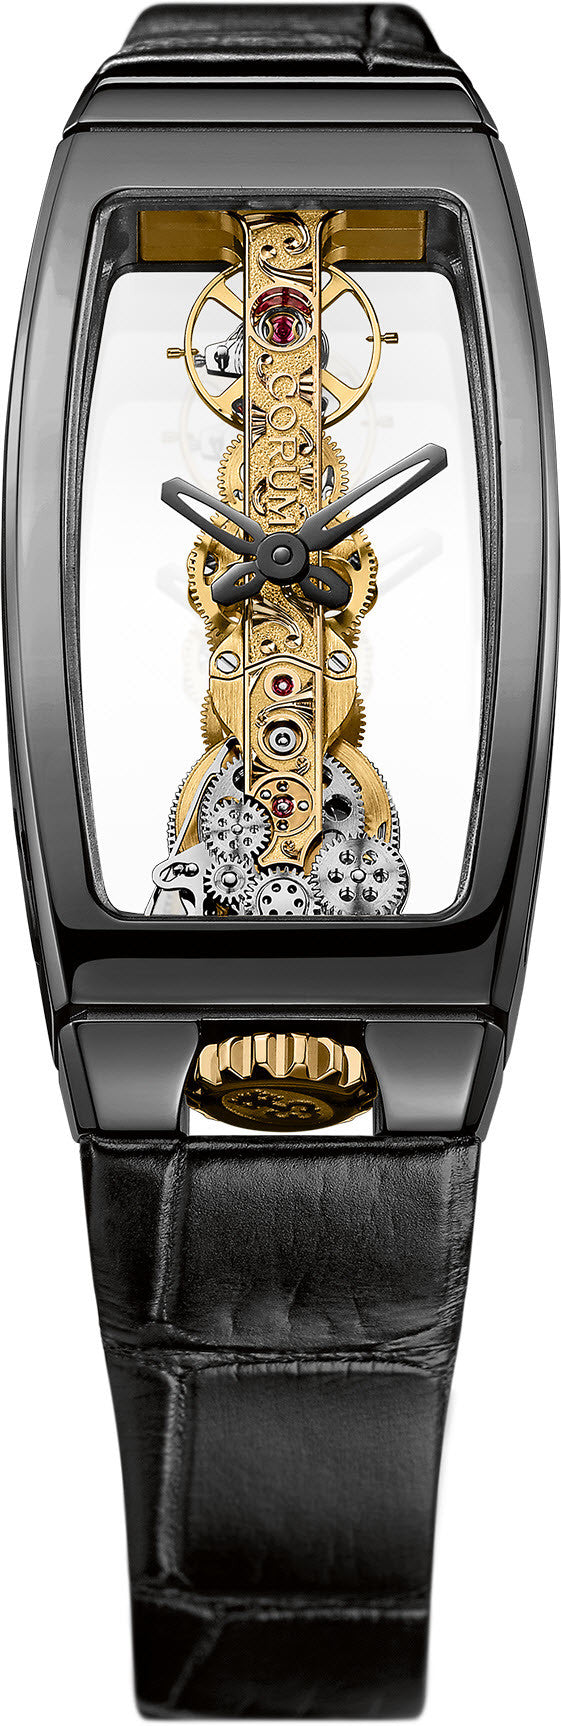 Corum Watch Miss Golden Bridge